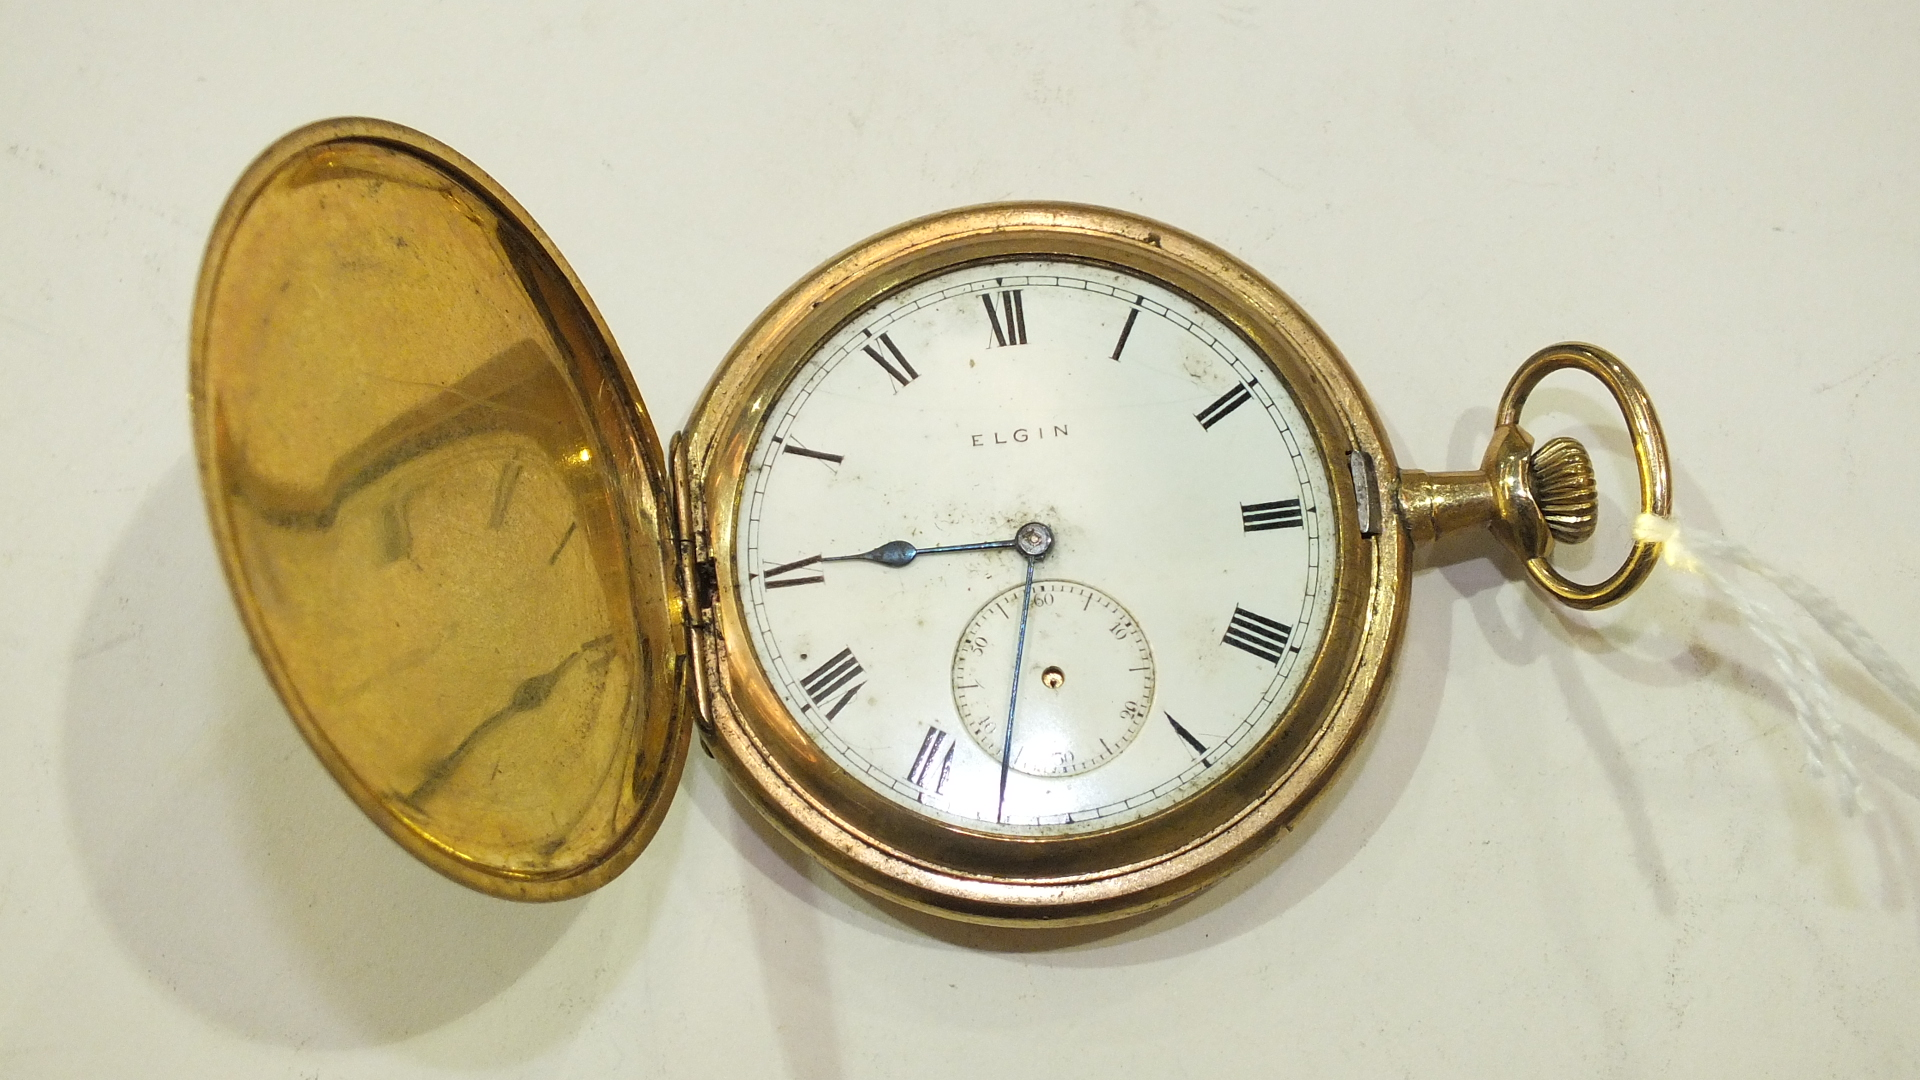 Lot 329 - An Elgin National Watch Co. hunter keyless pocket watch with gold-plated case, (a/f, not working).